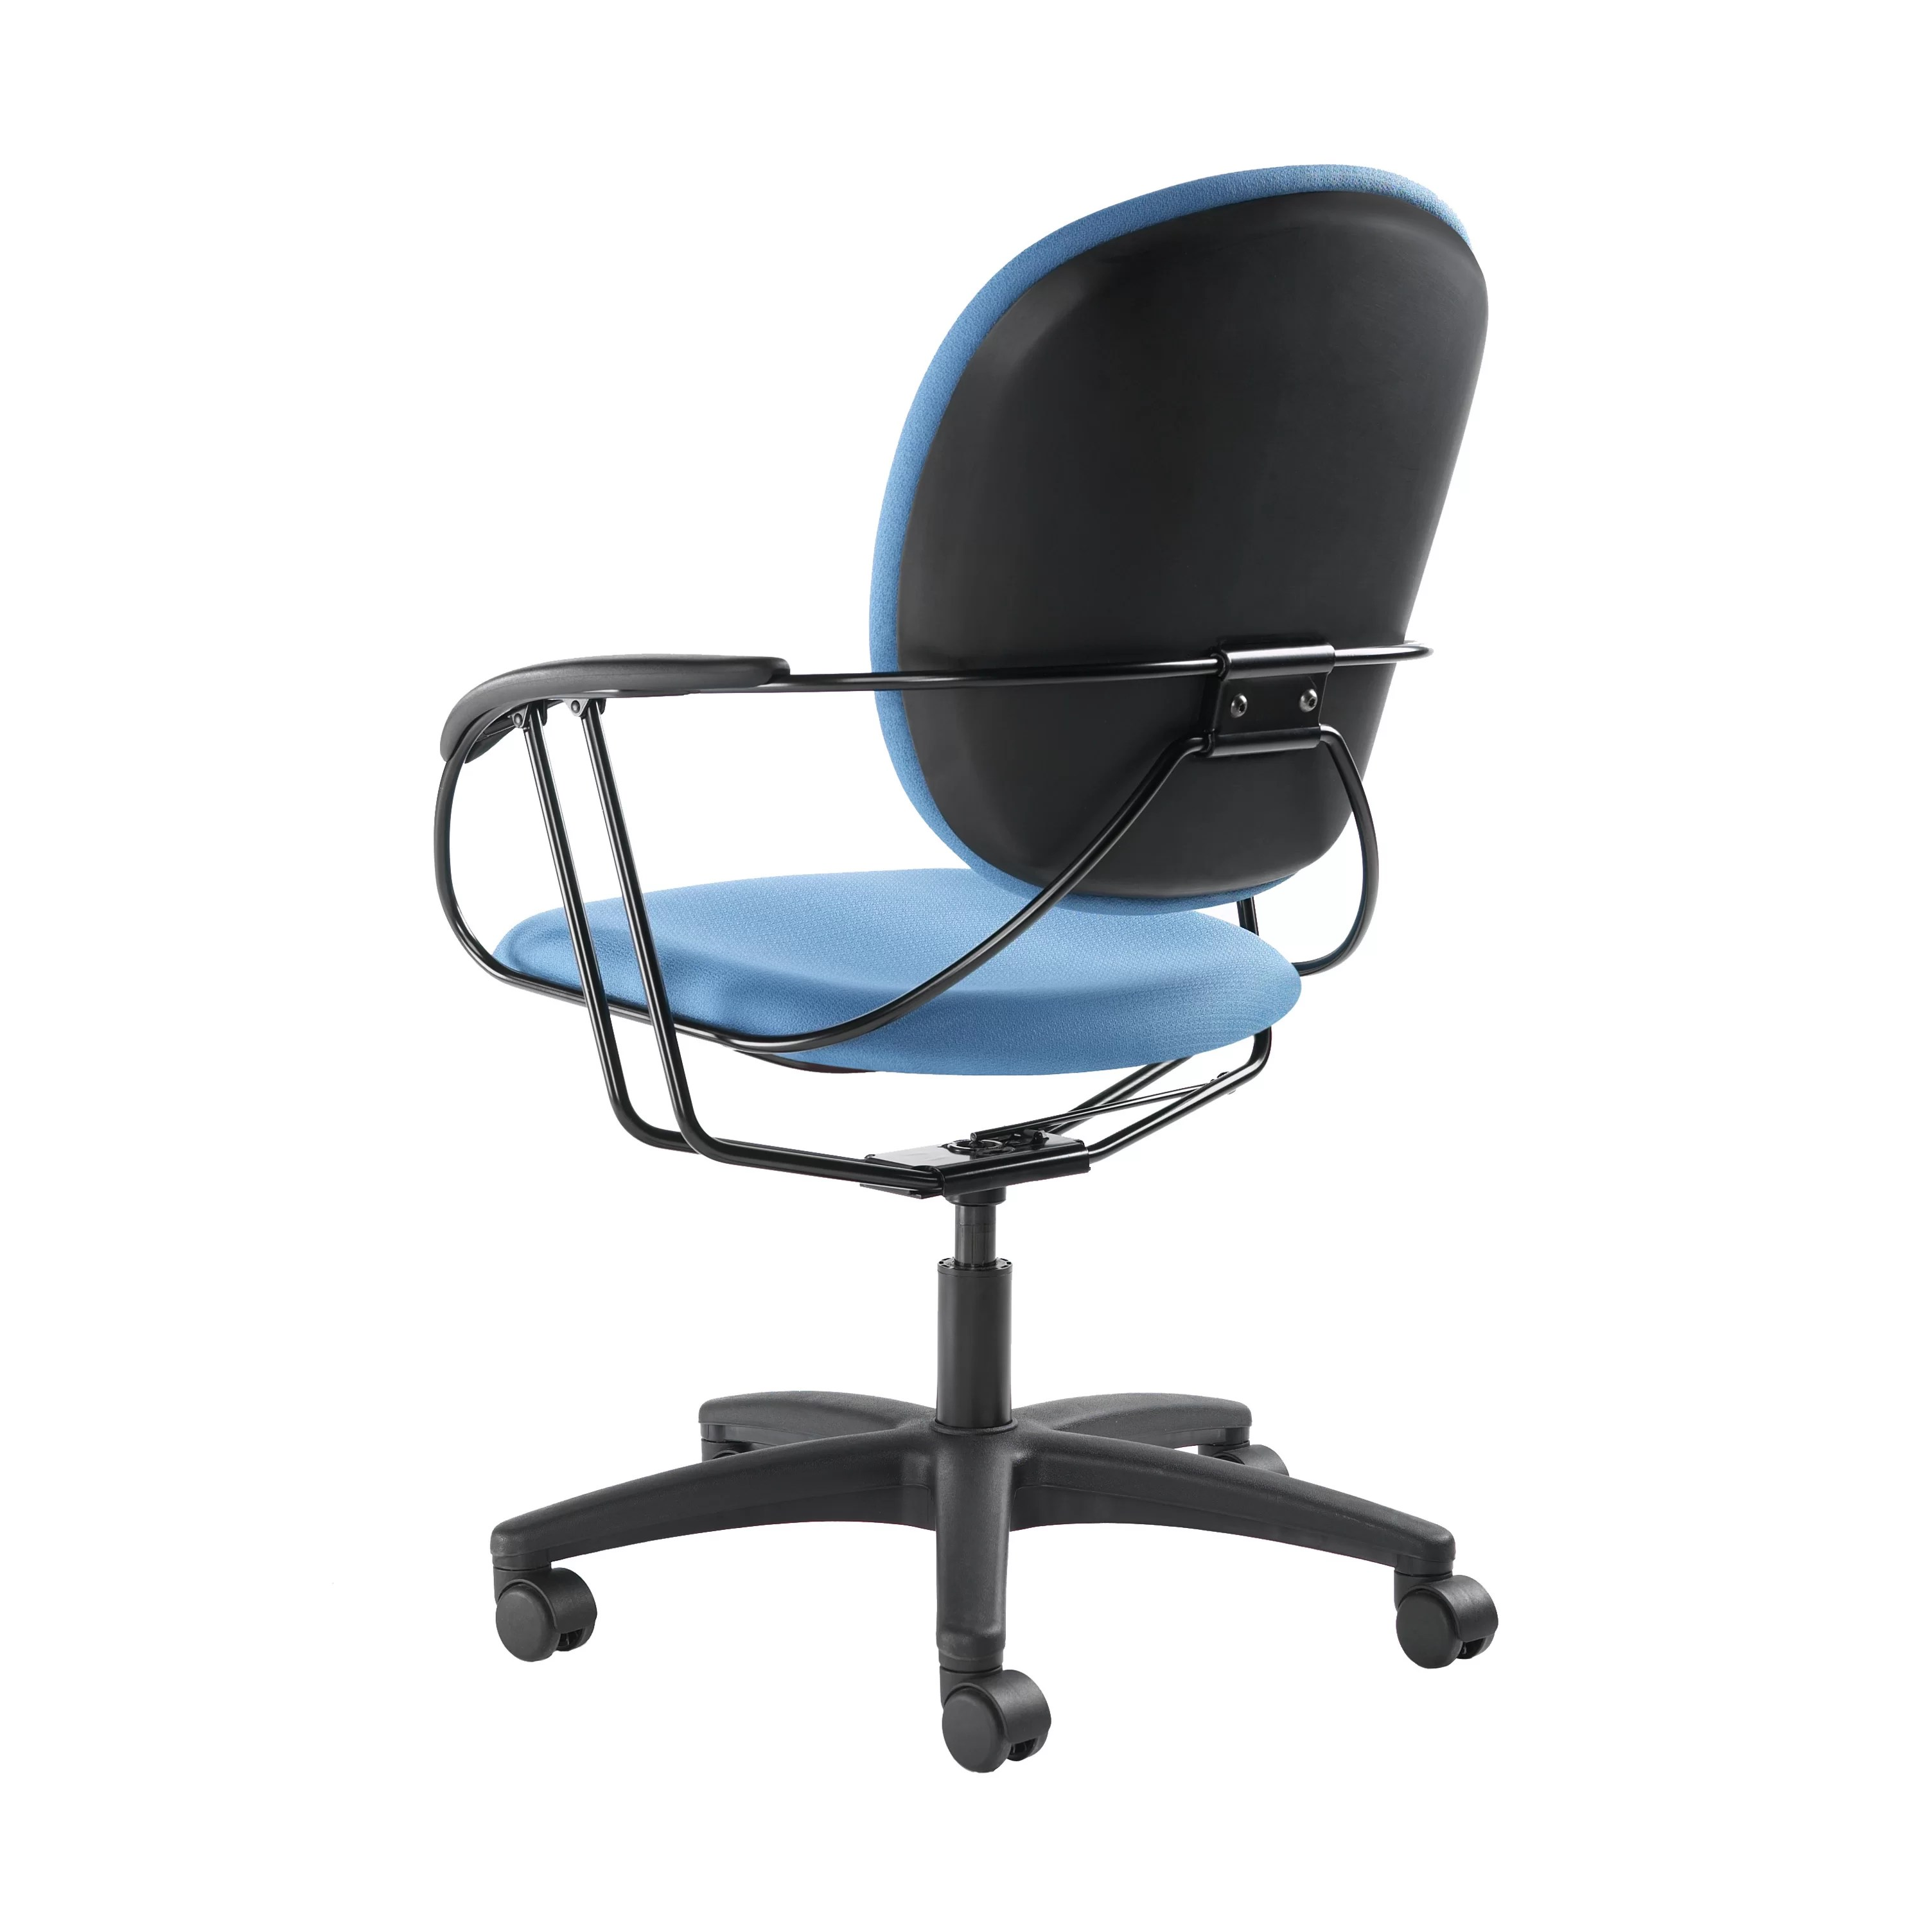 Steelcase Desk Chair Steelcase Uno Mid Back Desk Chair And Reviews Wayfair